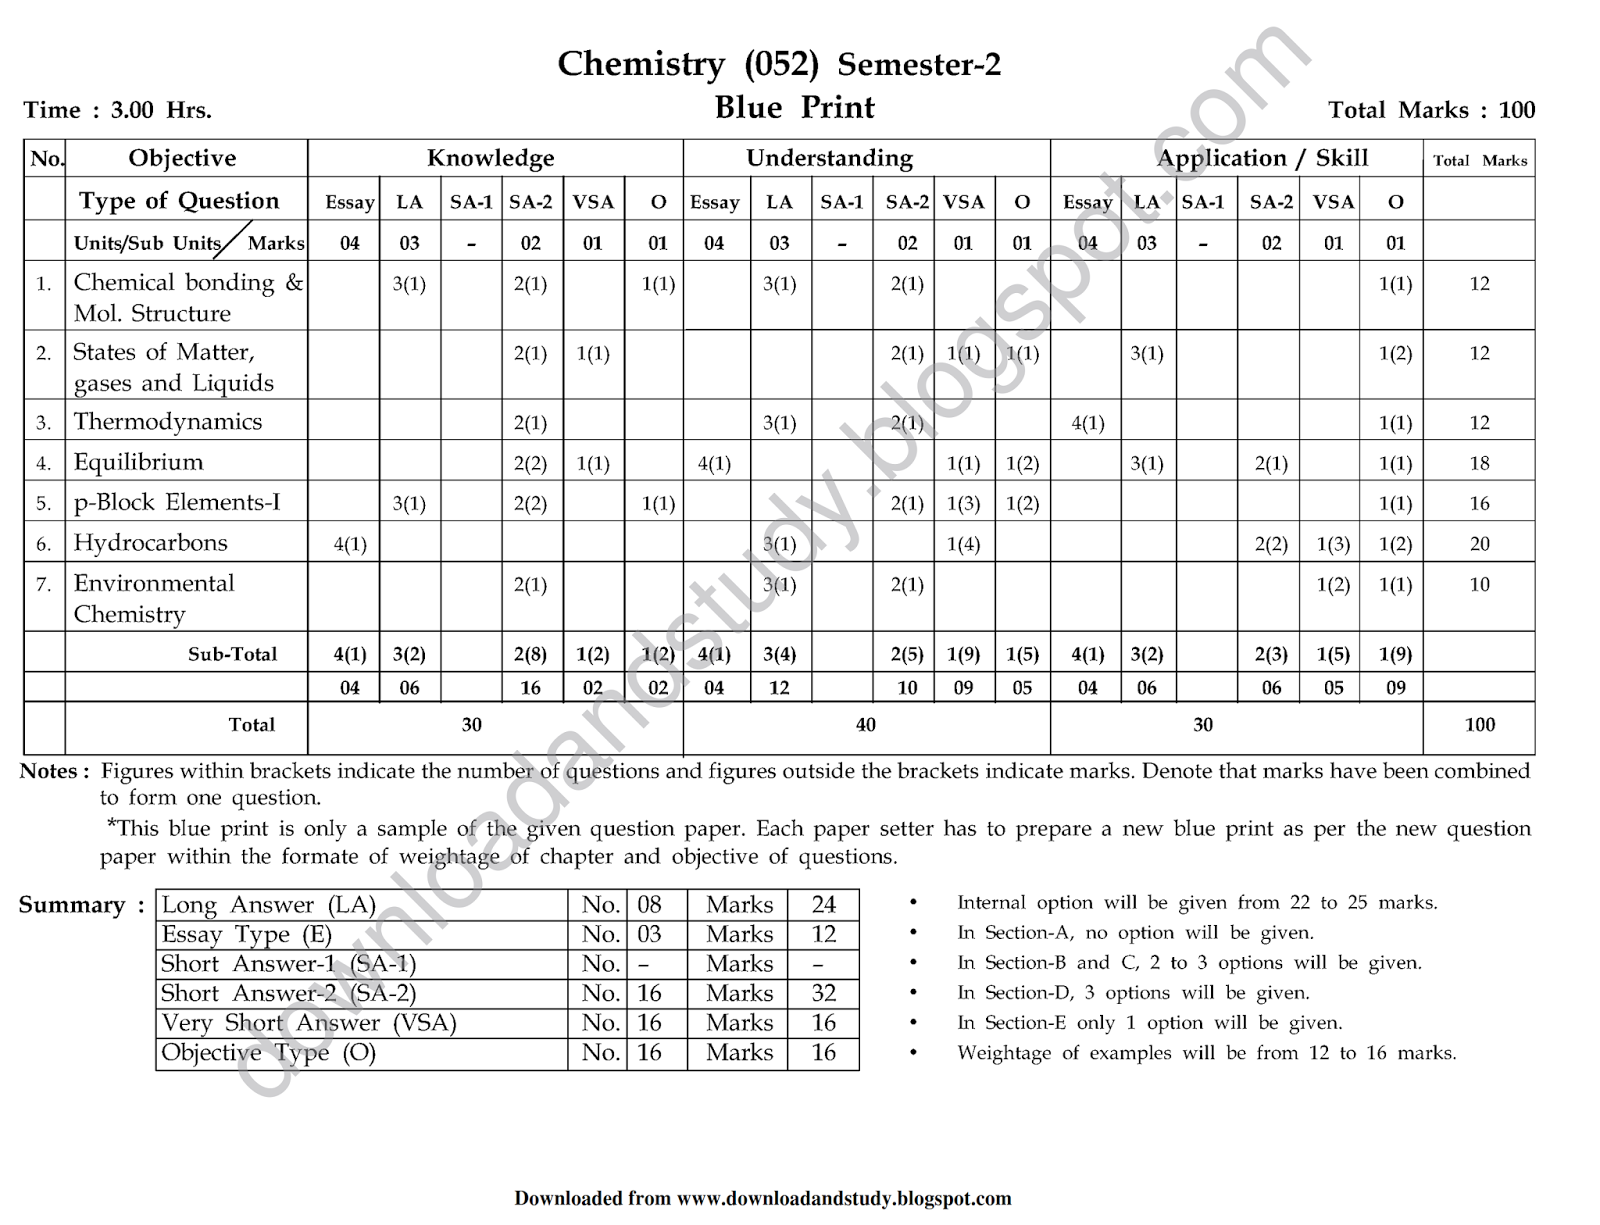 Download study chemistry semester 2 blueprint of question paper chemistry semester 2 blueprint of question paper gshseb malvernweather Gallery